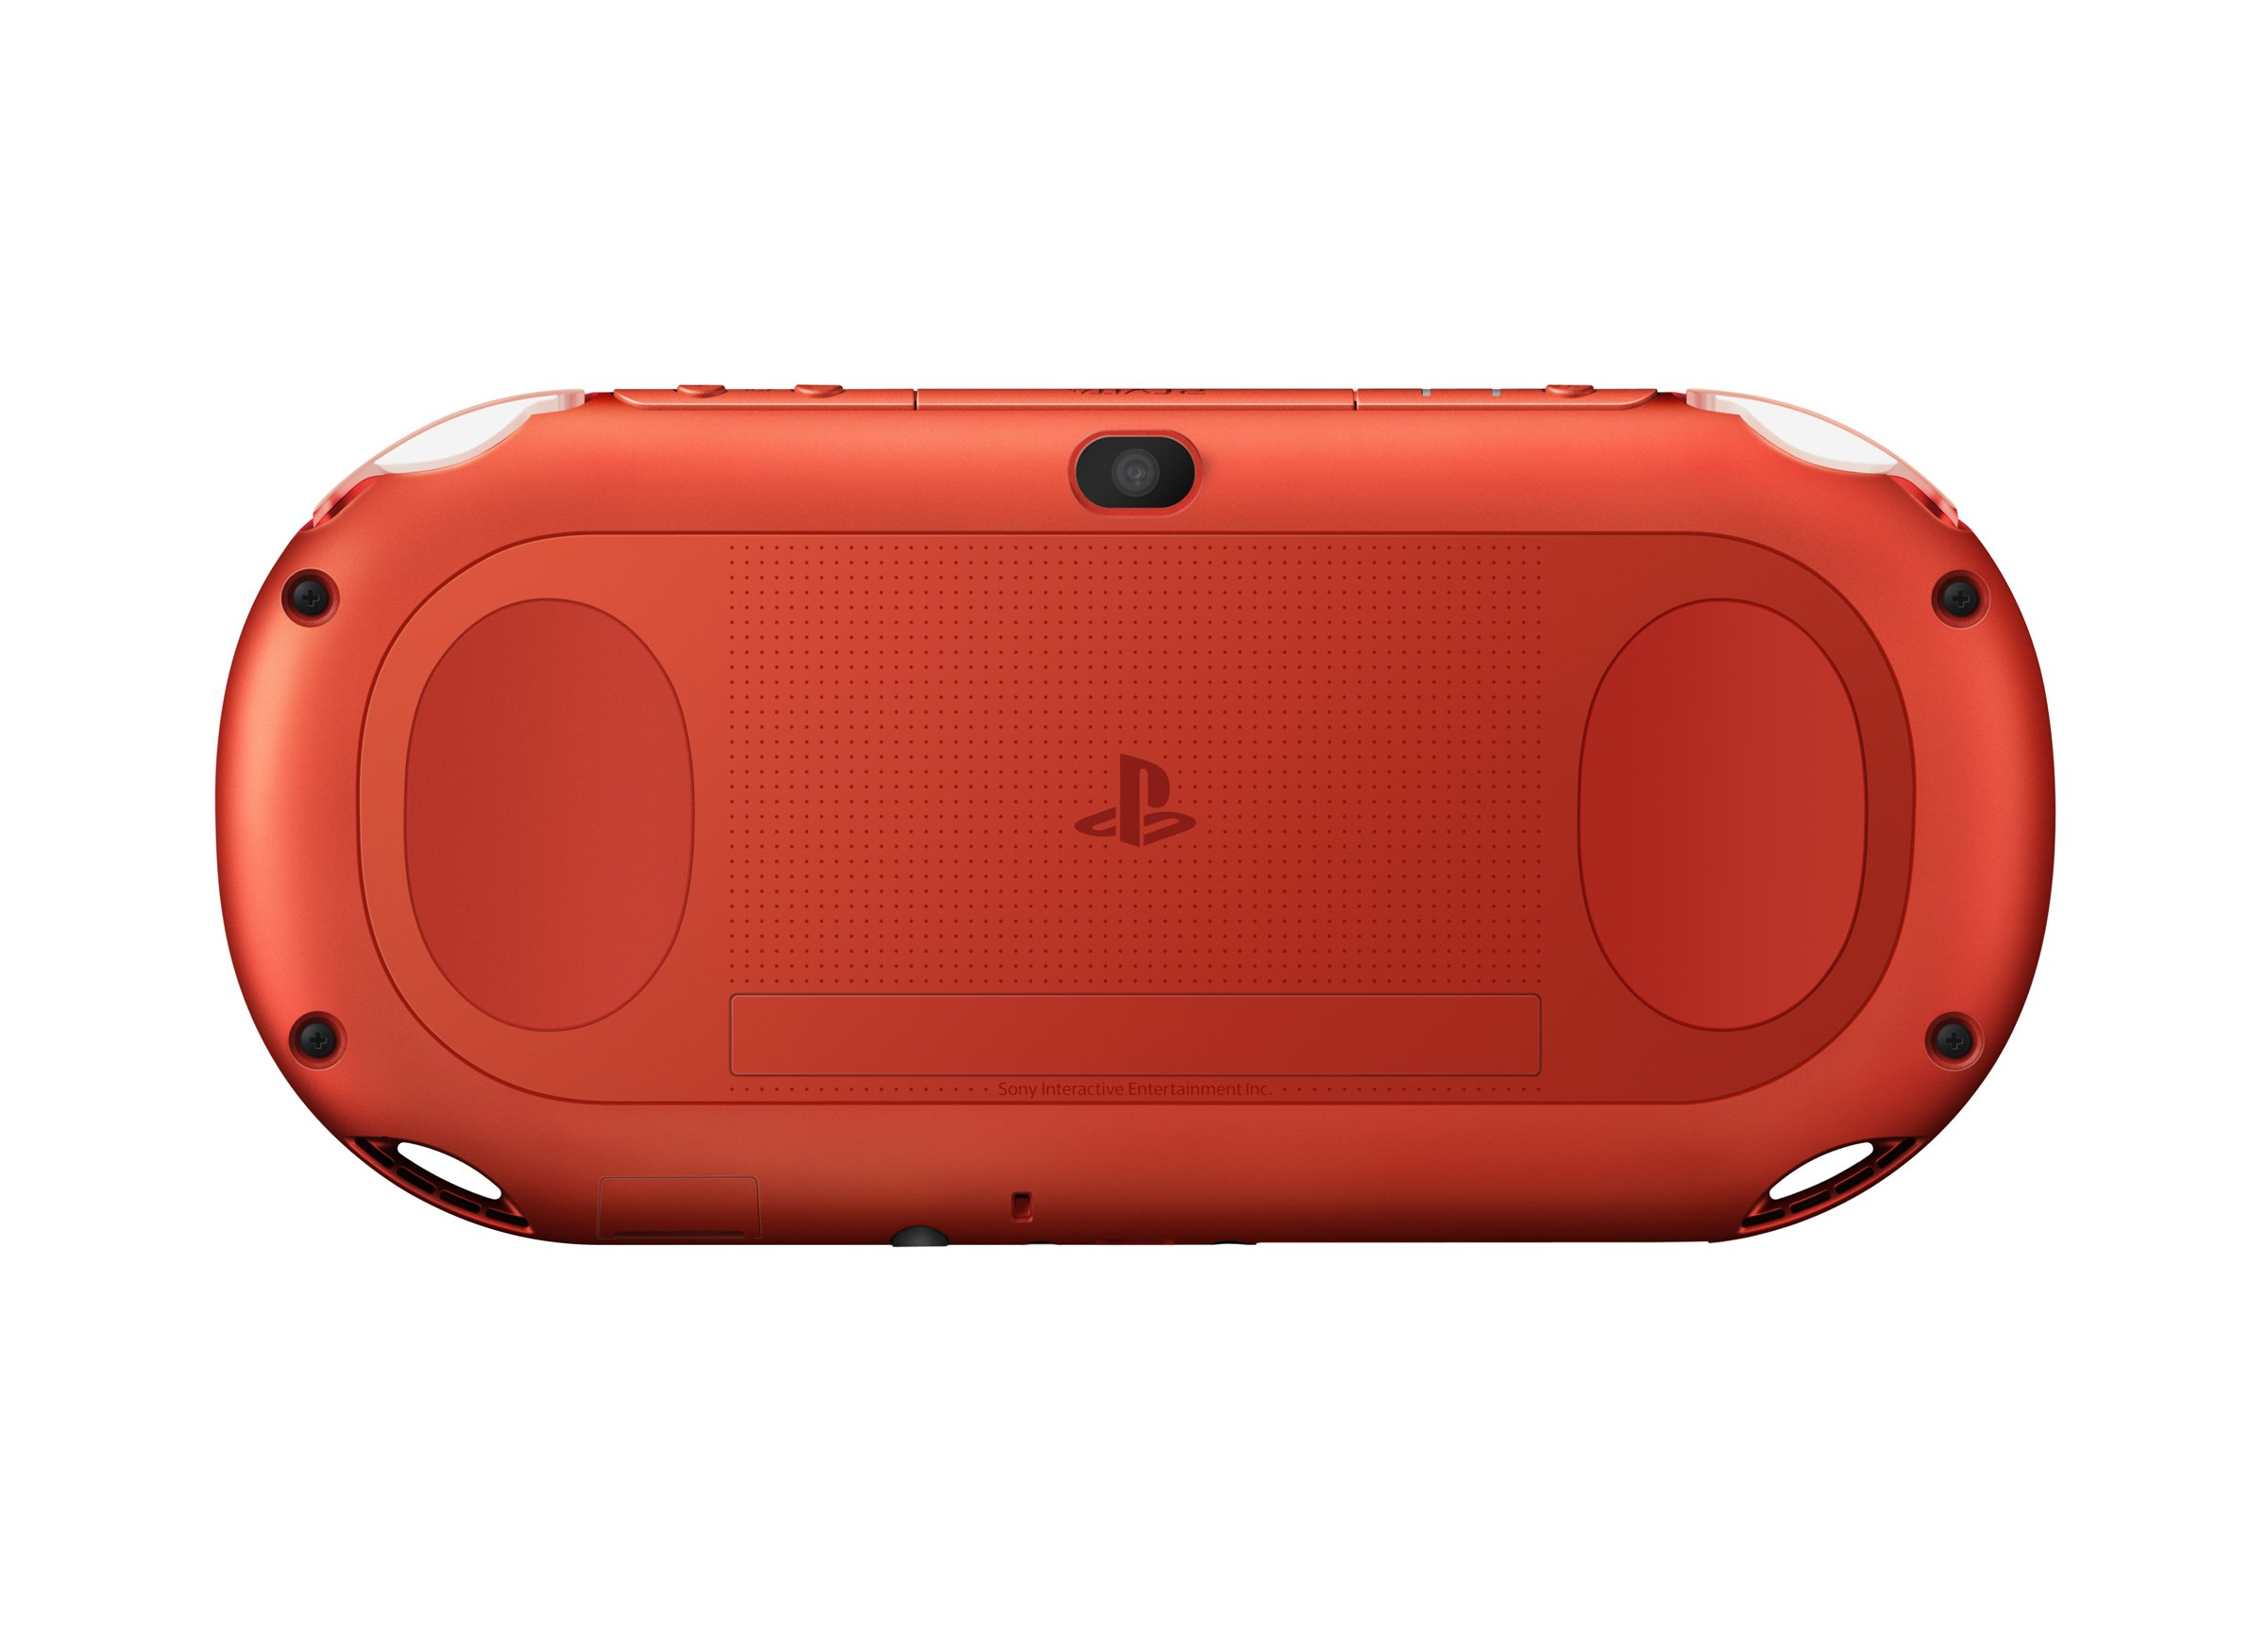 PlayStation Vita Wi-Fi Metallic Red PCH-2000ZA26 (Japan Import) by Sony (Image #8)